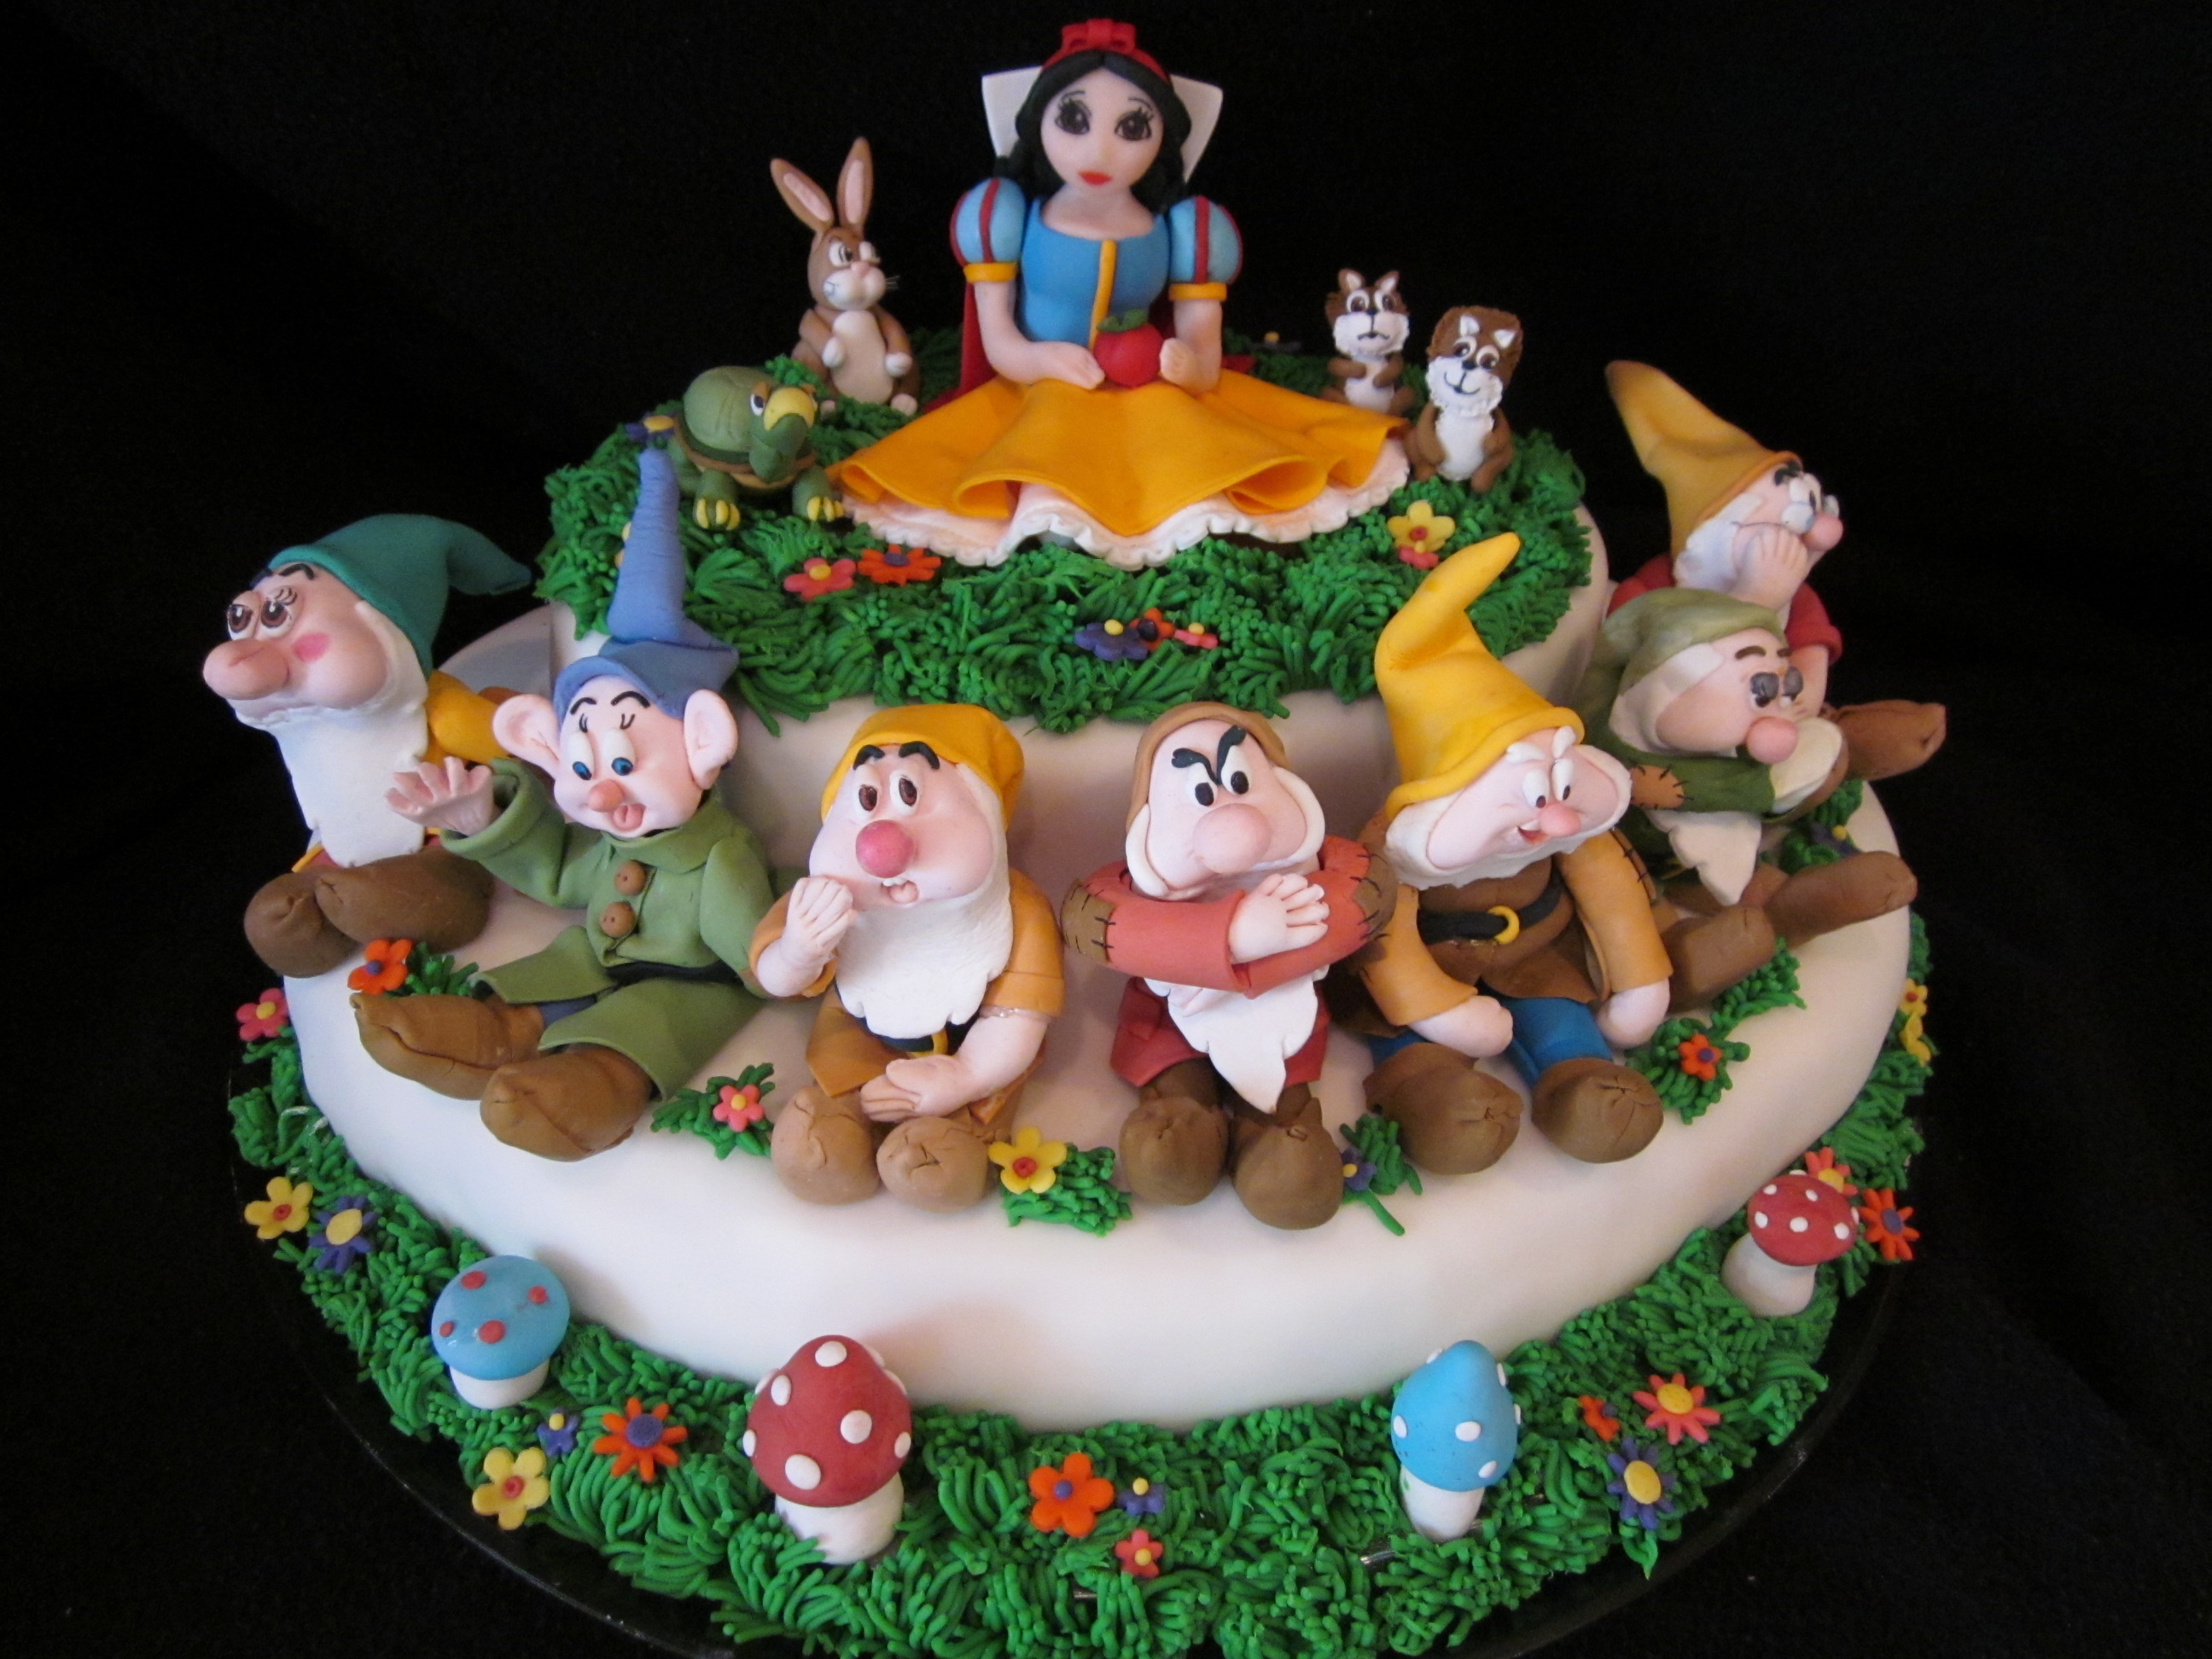 Snow white and the seven dwarfs cake dolce ladybug